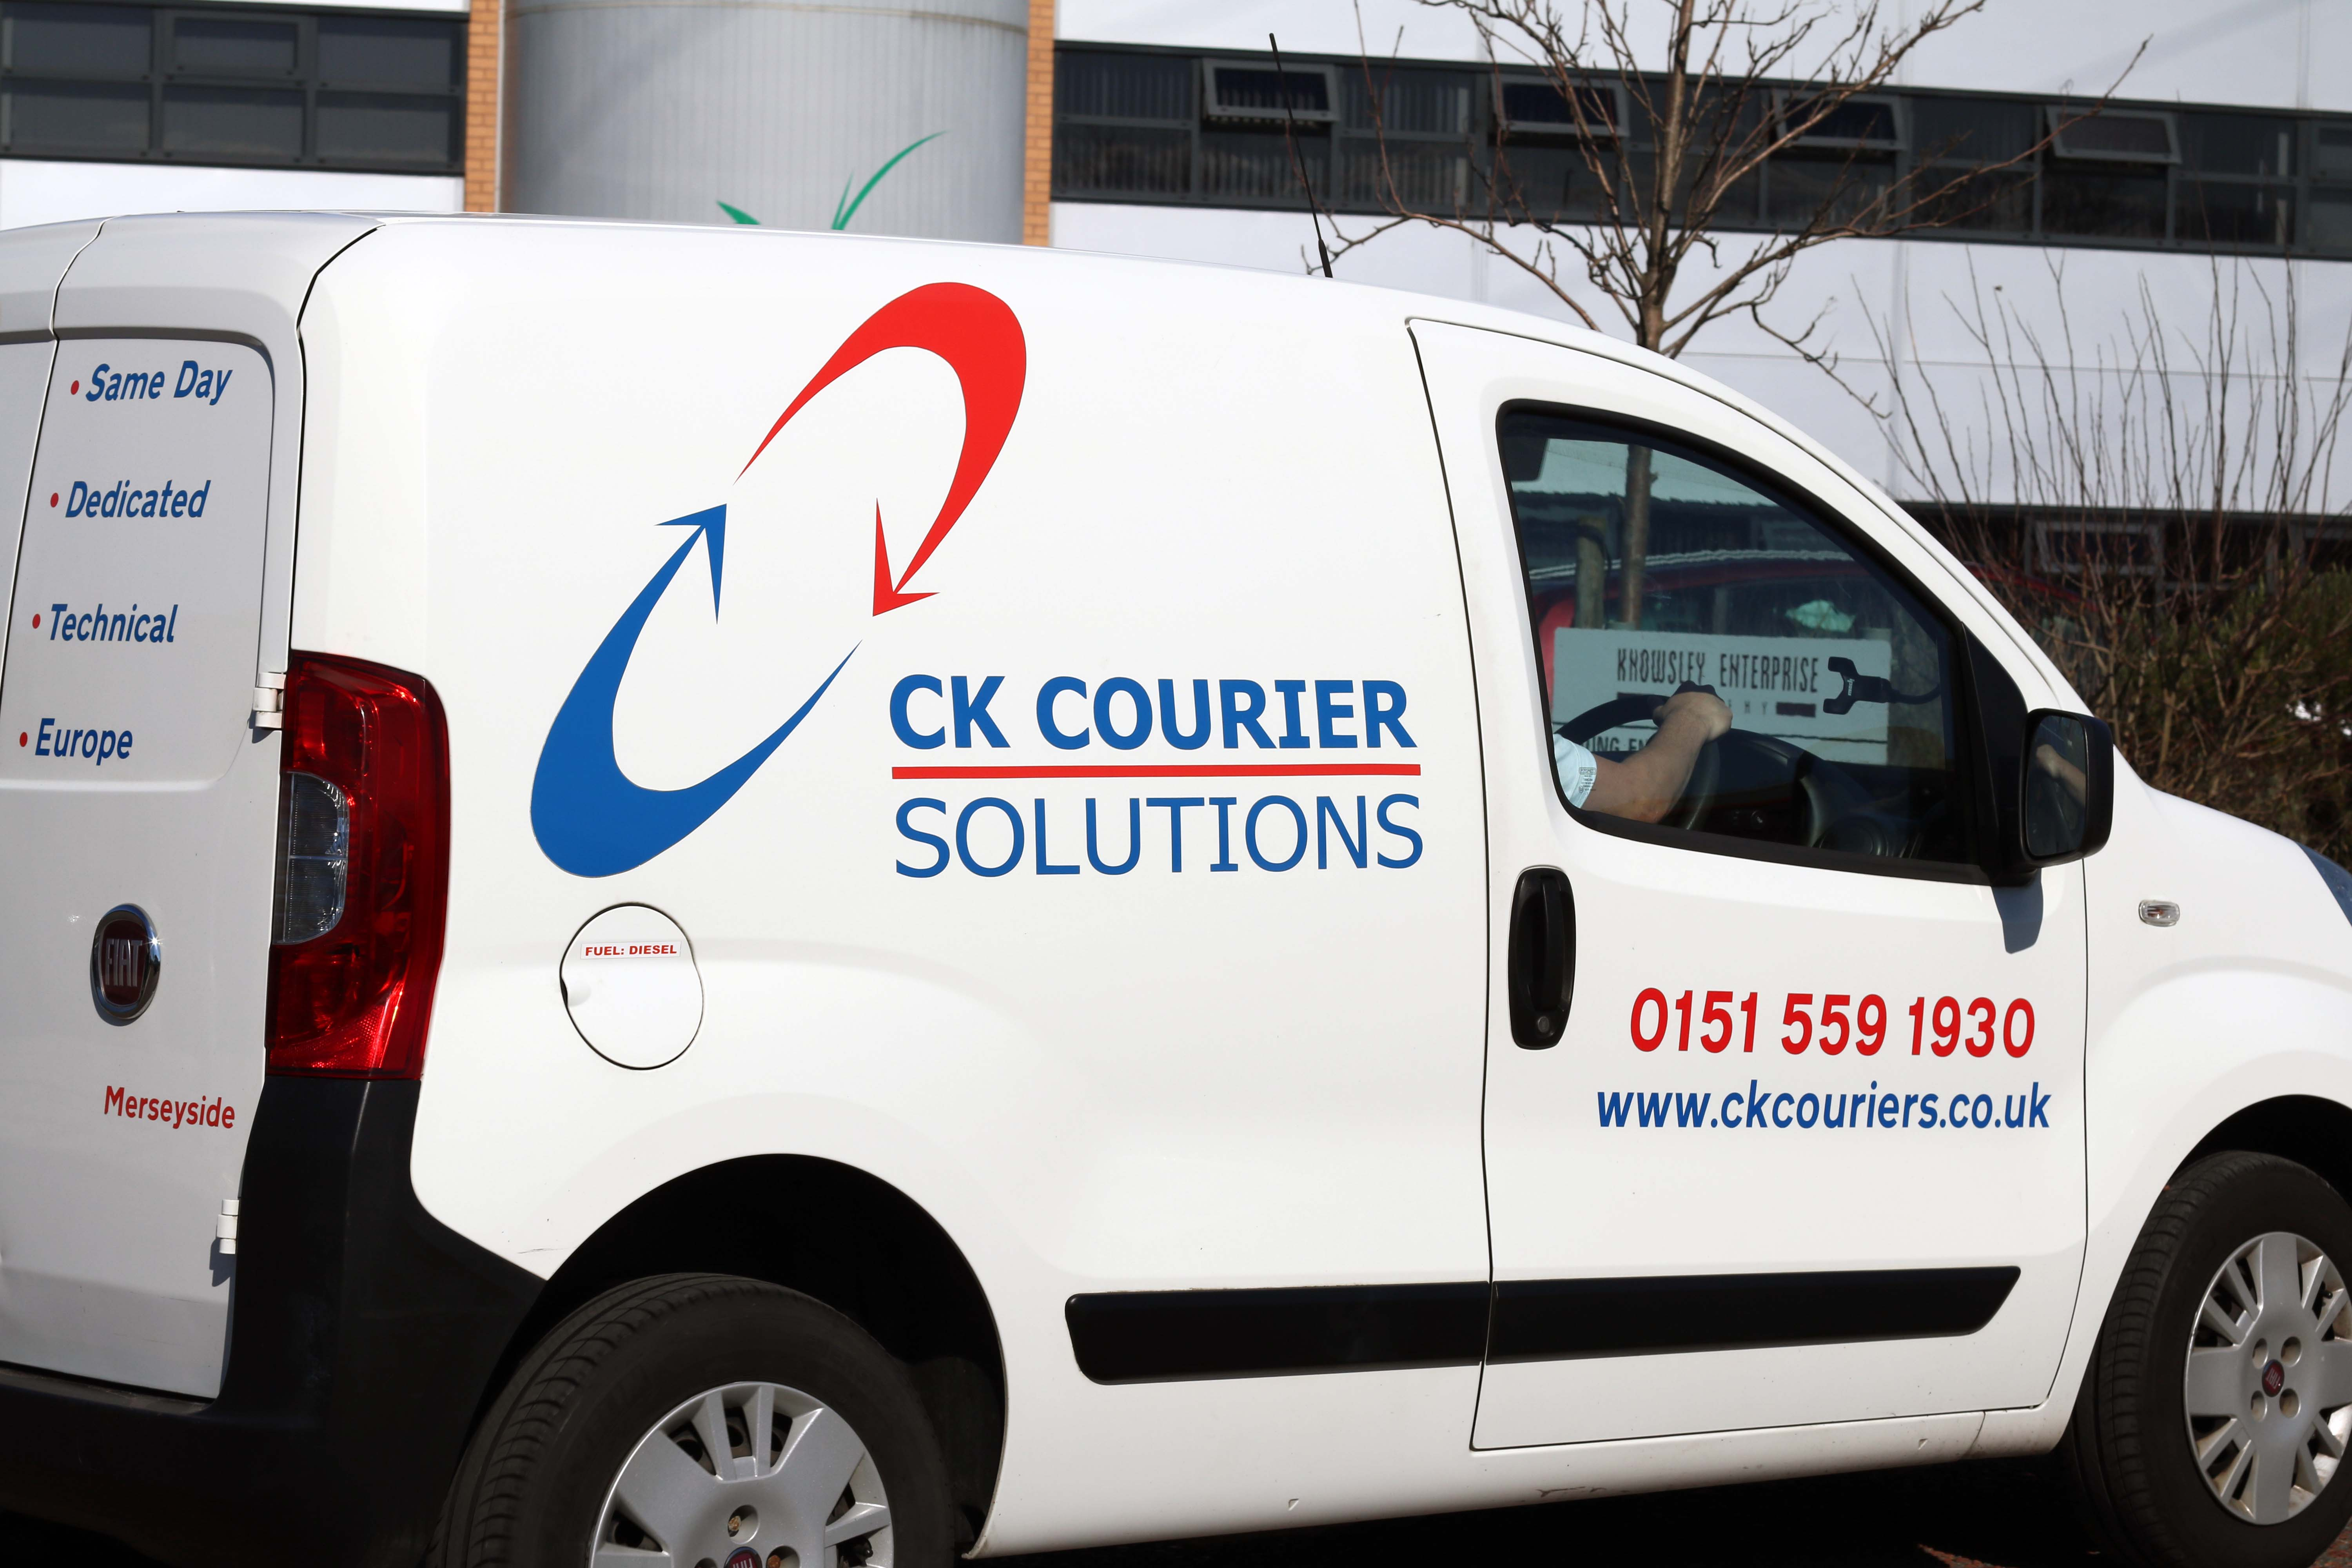 Commercial Photography   127 Media   CK Courier Solutions Merseyside